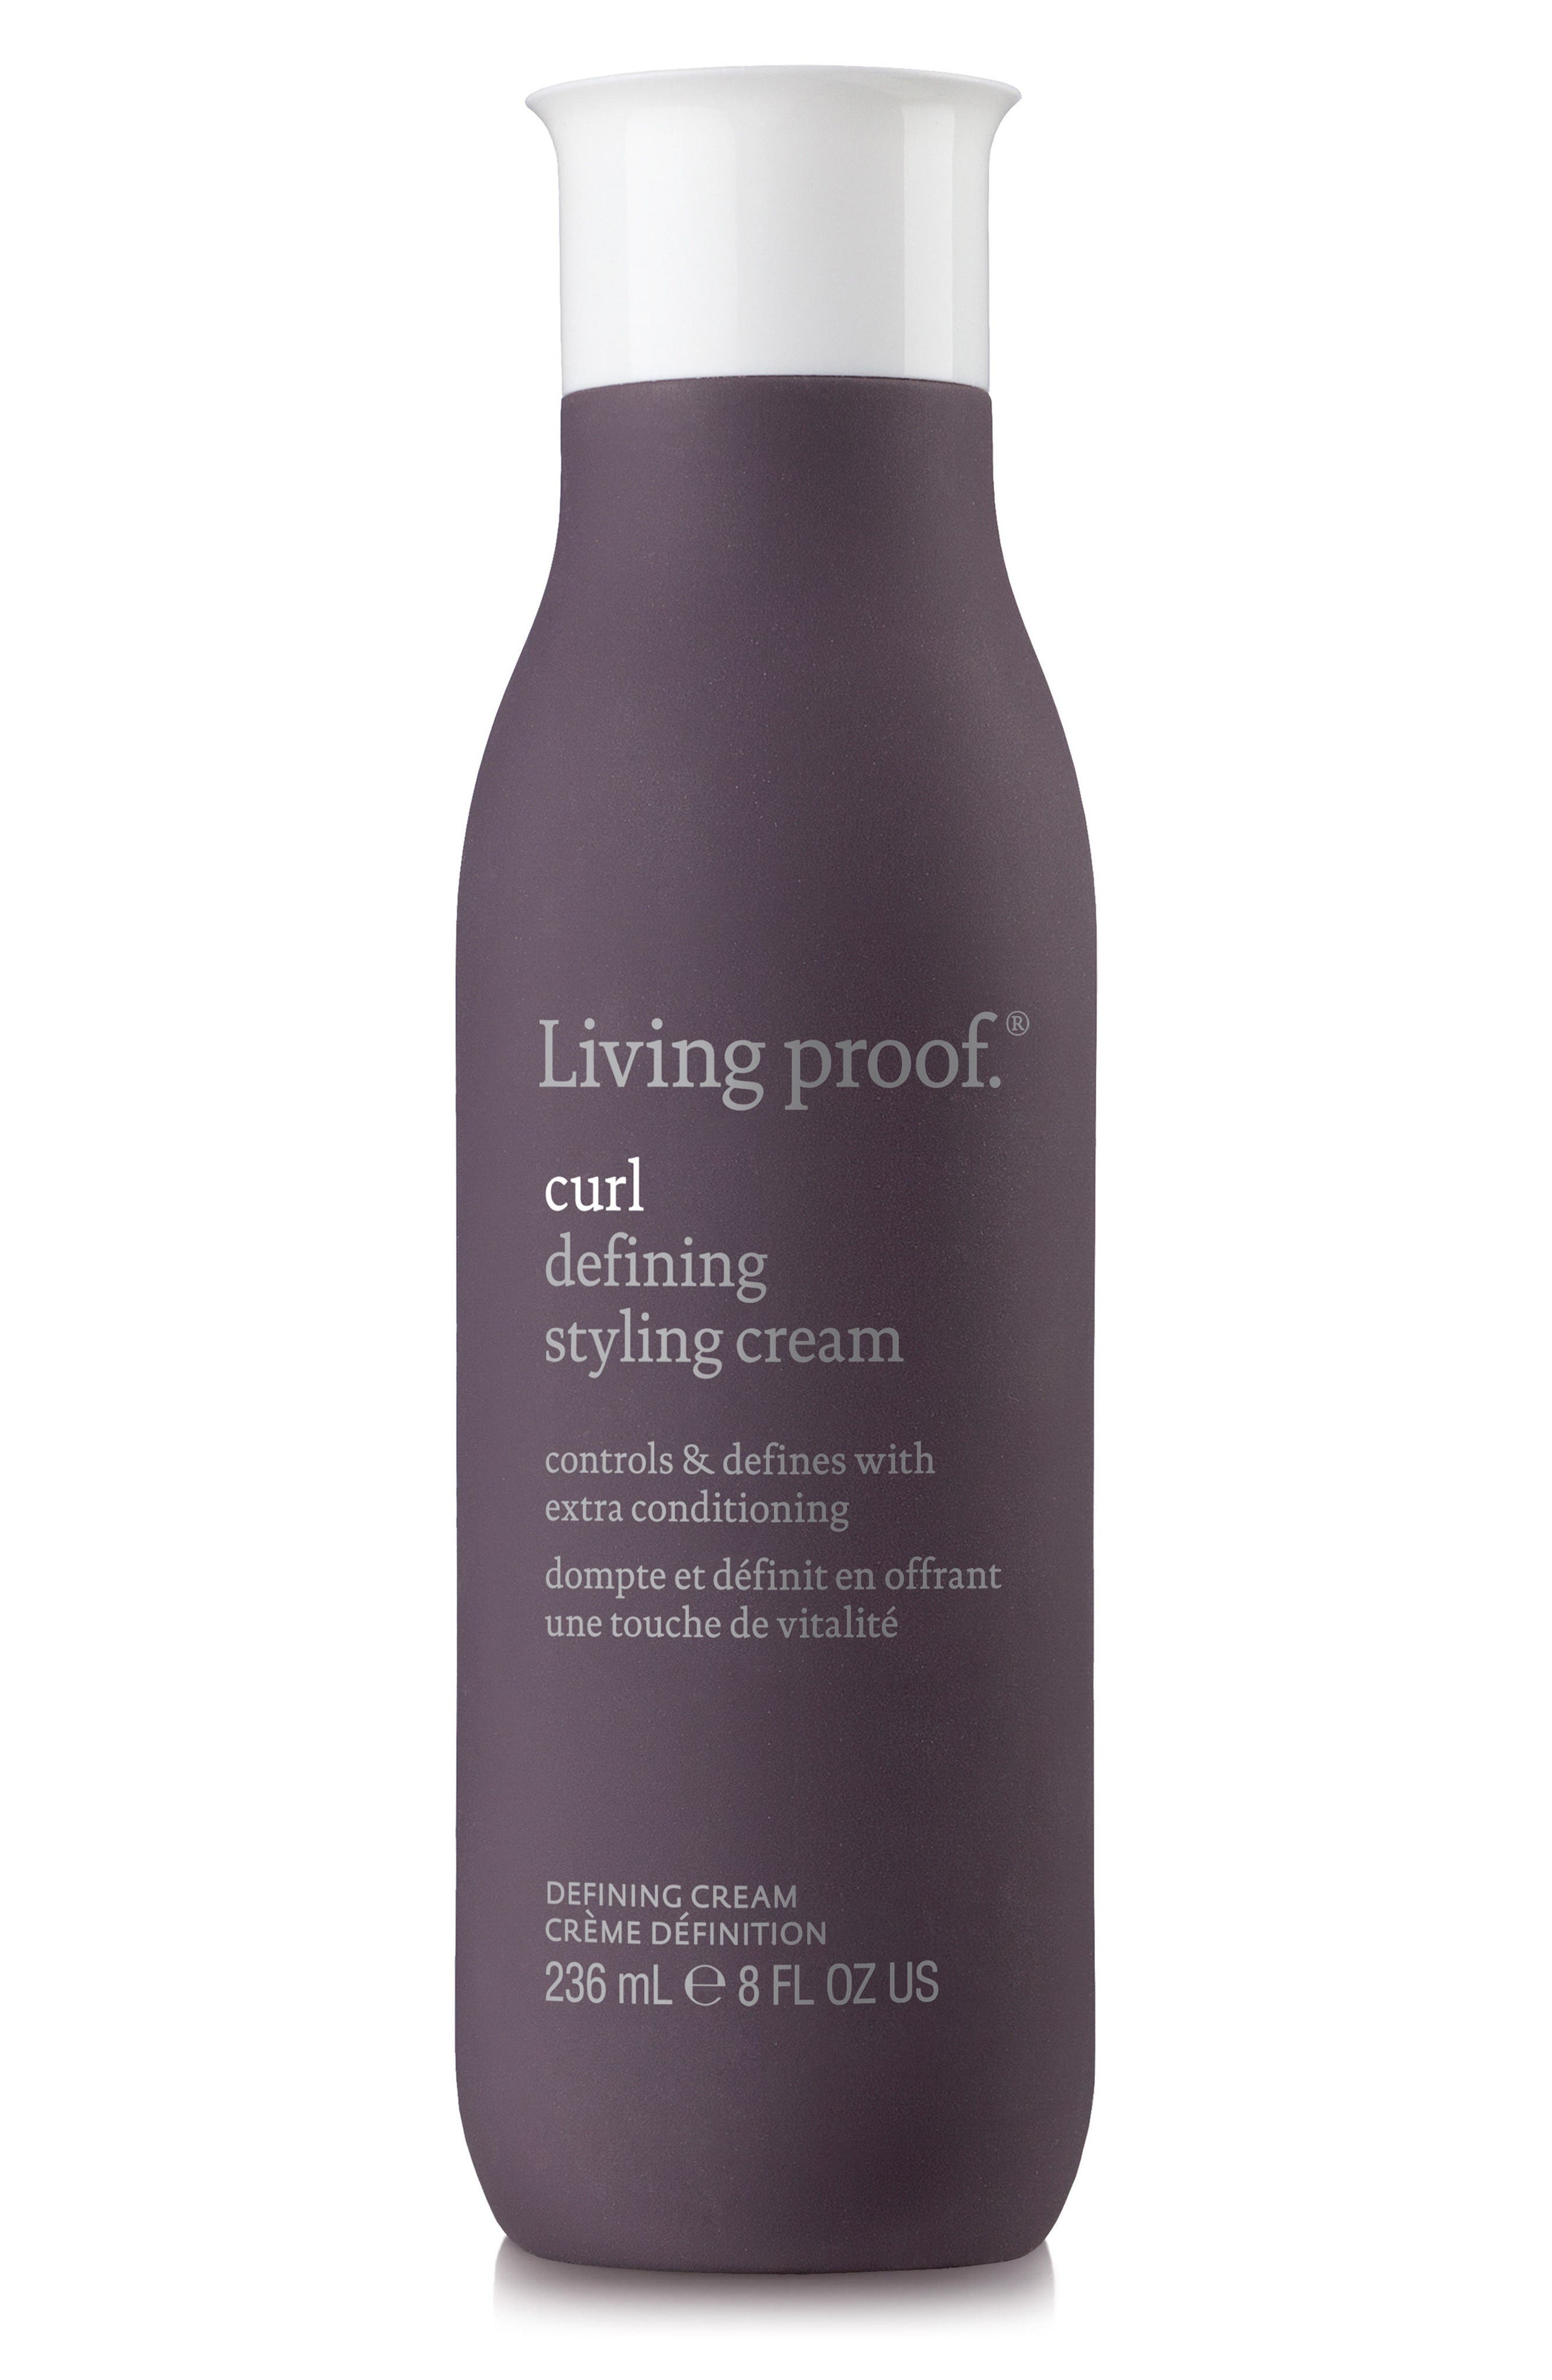 Living proof® Curl Defining Styling Cream